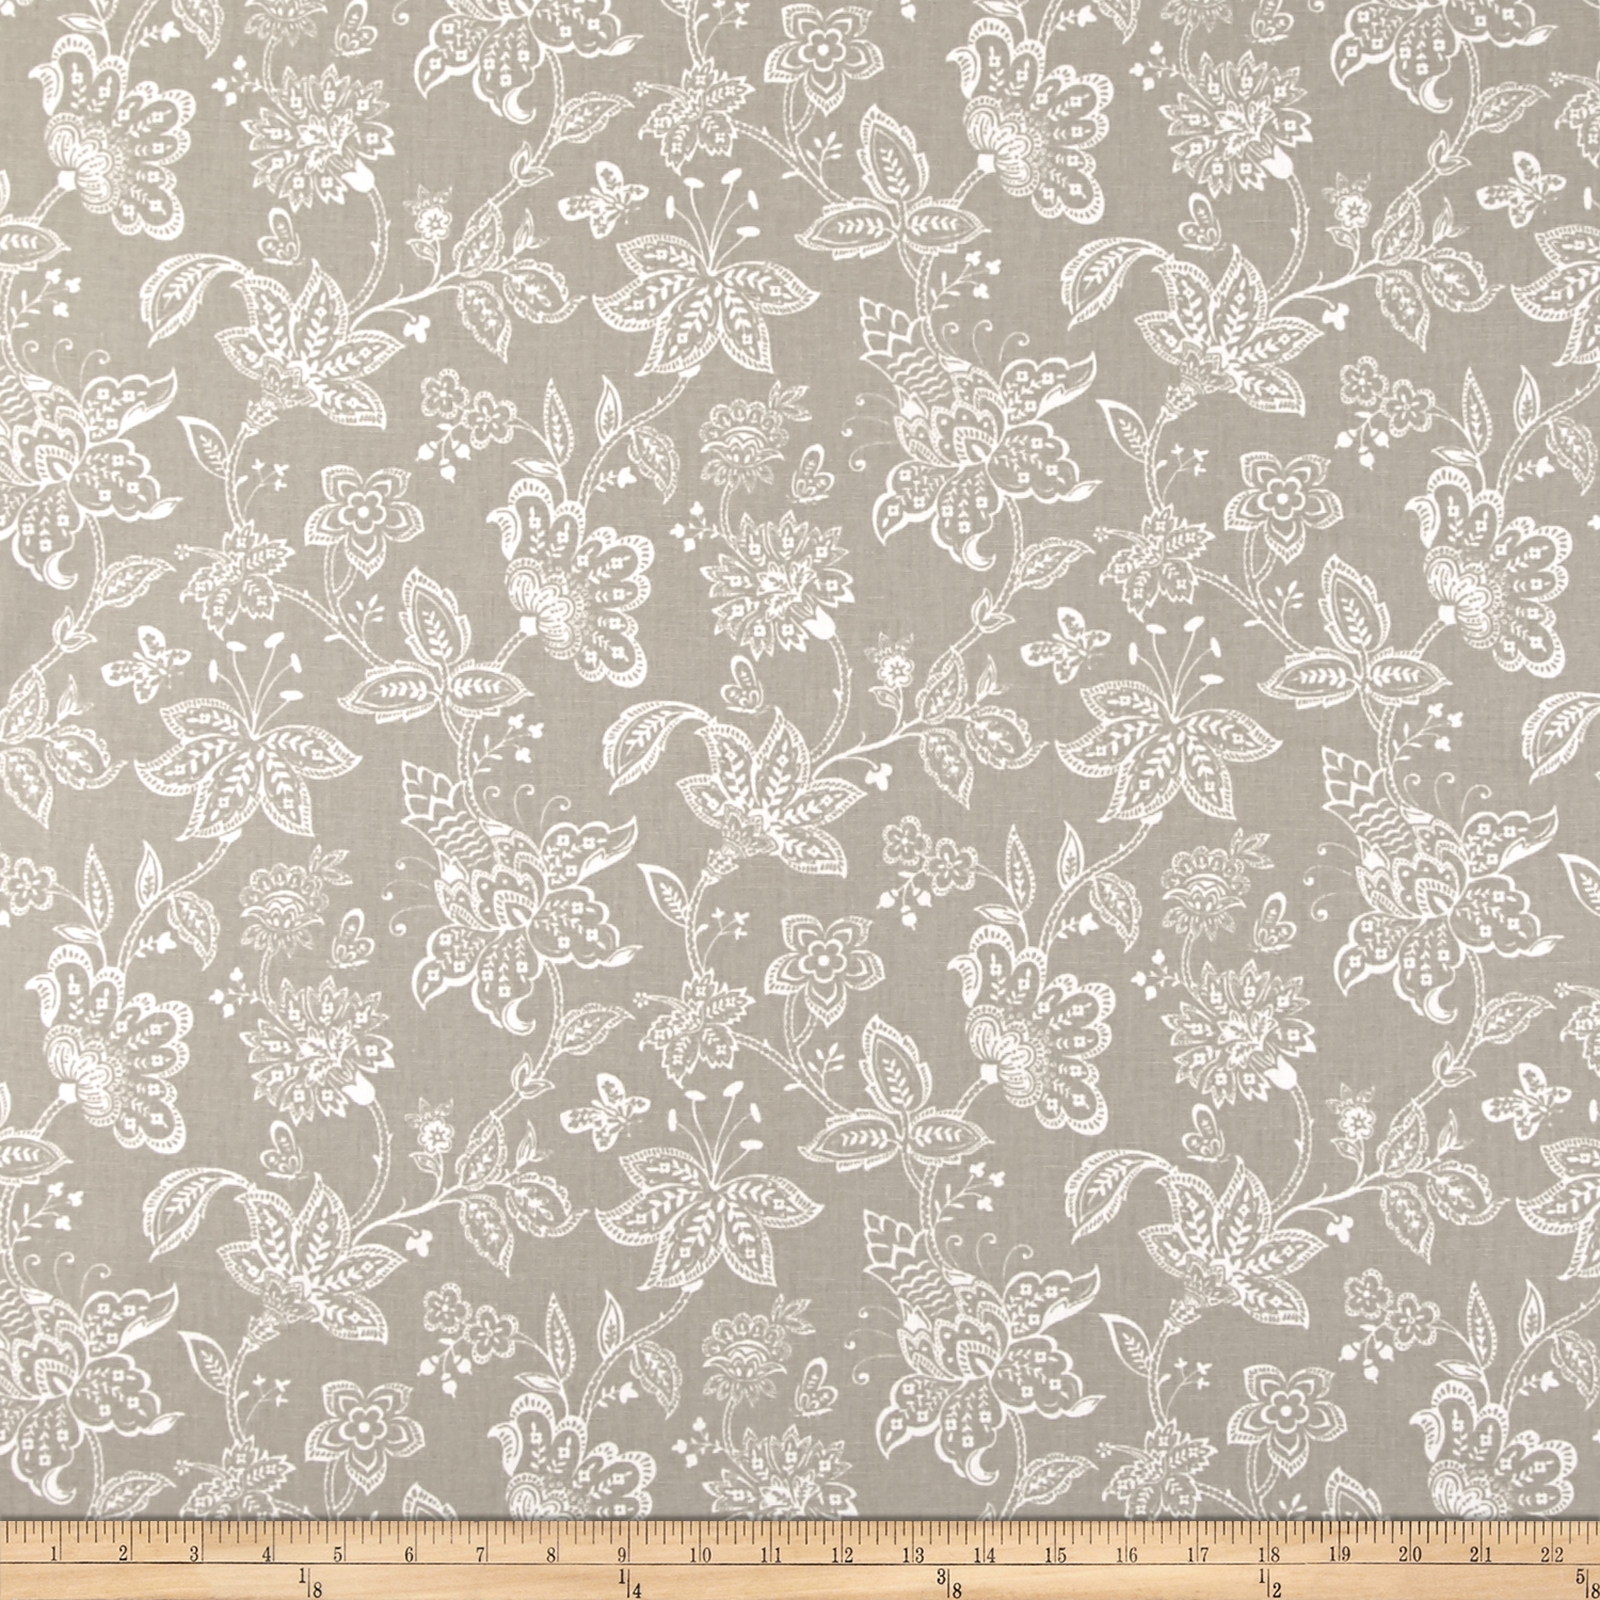 Premier Prints Madelyn Cove Fabric by Premier in USA